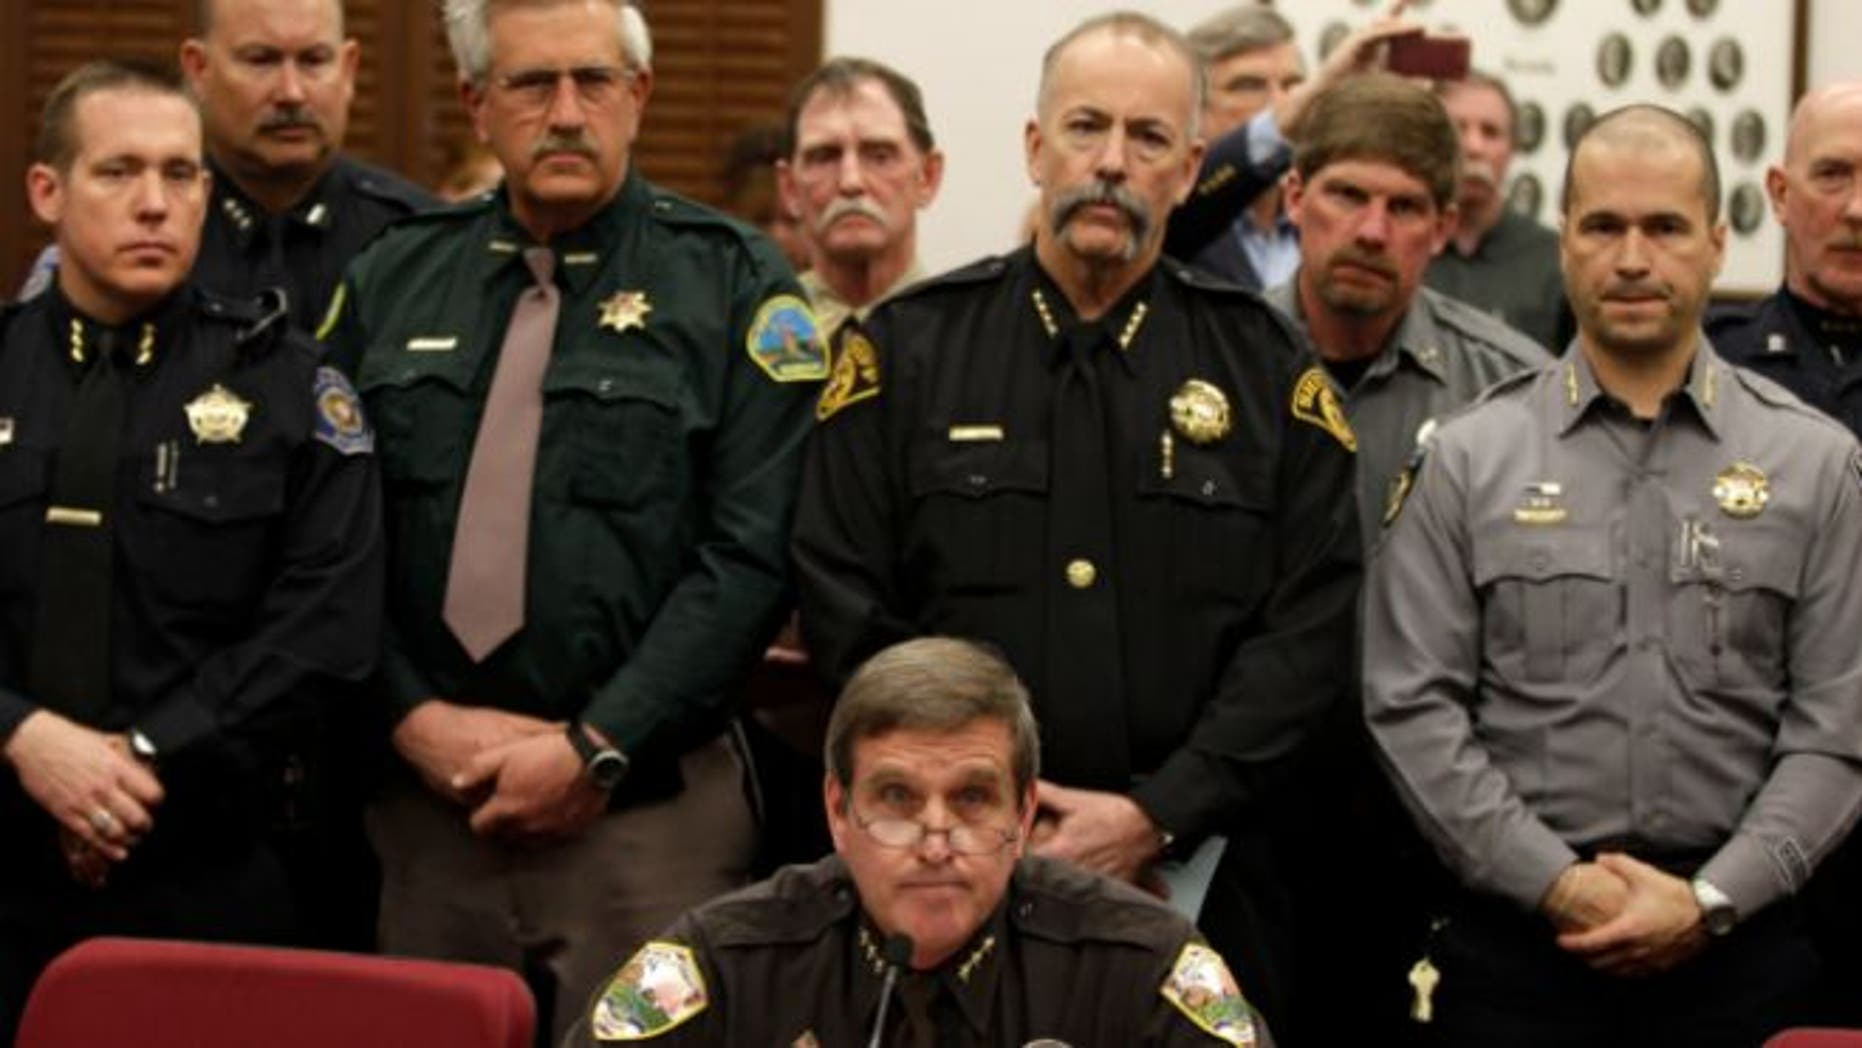 March 4, 2013: Weld County Sheriff John Cooke, center, backed by a group of fellow sheriffs, testifies against proposed gun control legislation in the Colorado Legislature, at the State Capitol, in Denver.